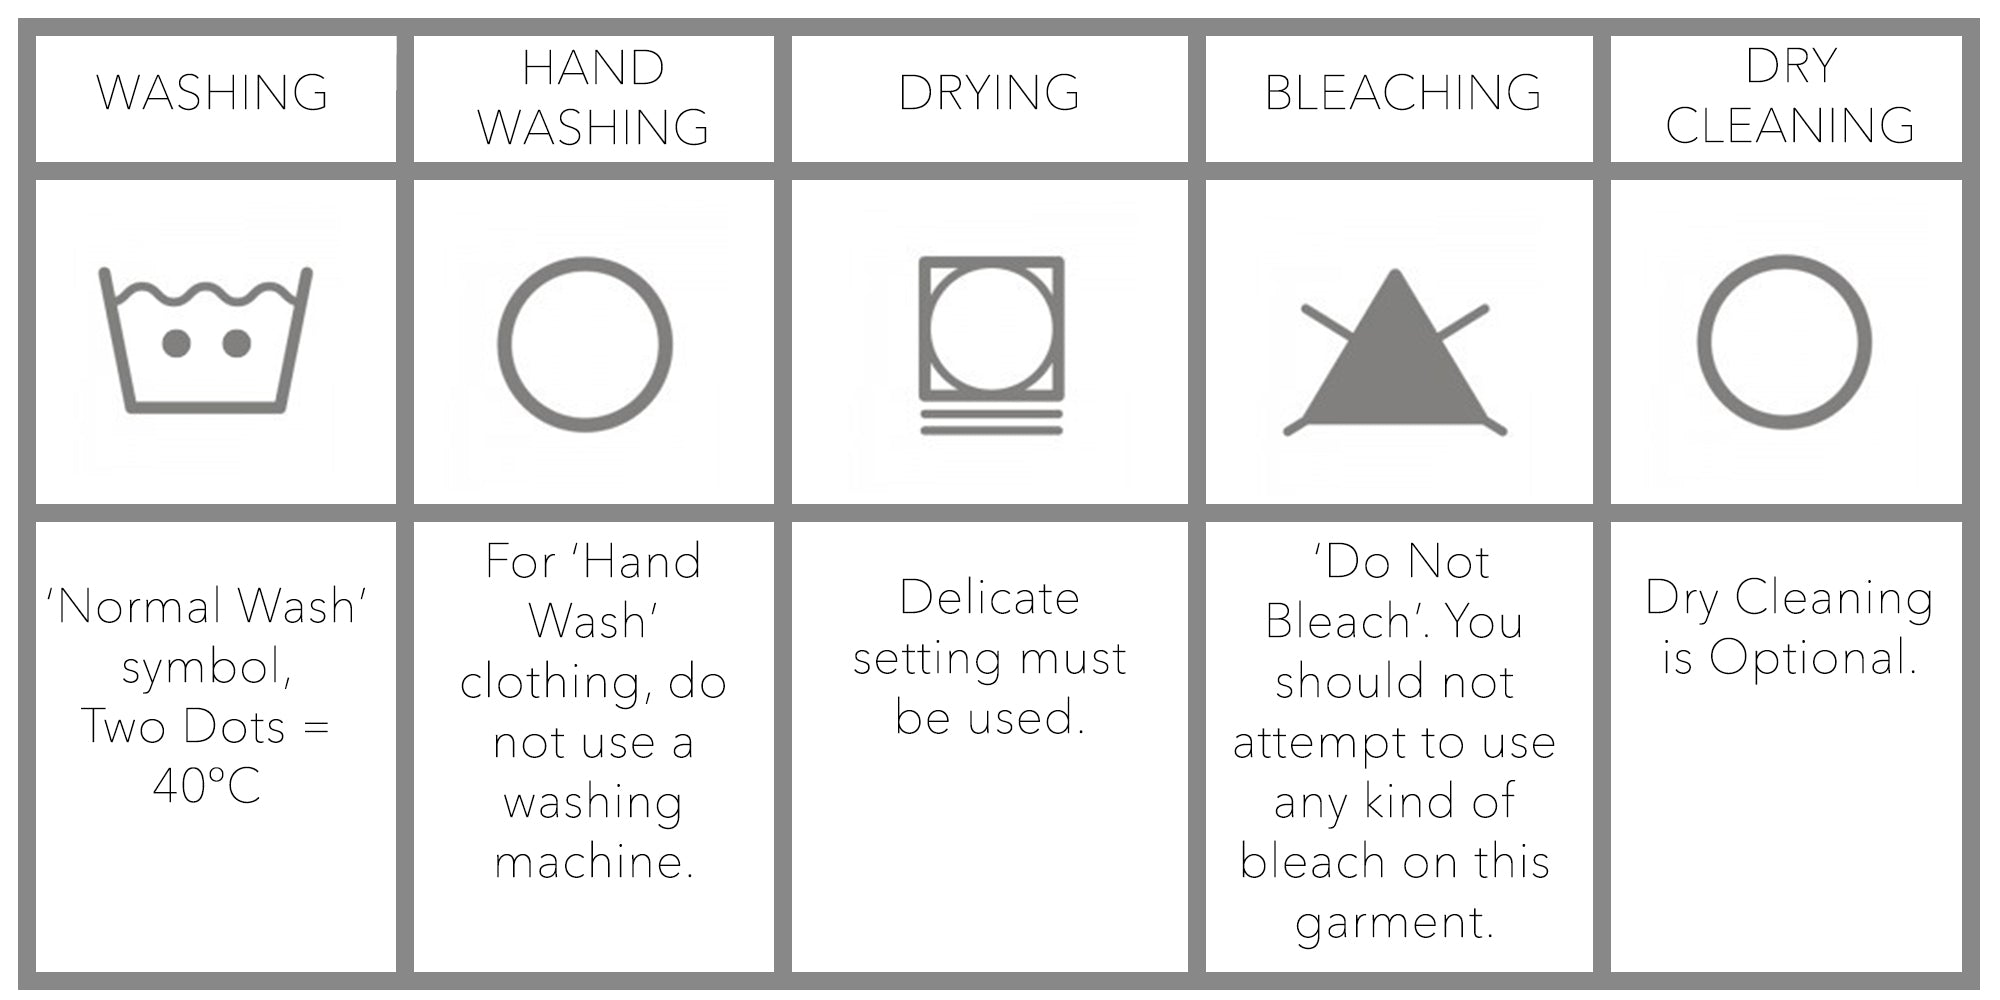 garment care online chart, how to take care of your apparel, apparel washing guide, wash instructions contains everything from washing to drying to help preserve your baciano sweater/top, each guide should be follow to maximize garment life,